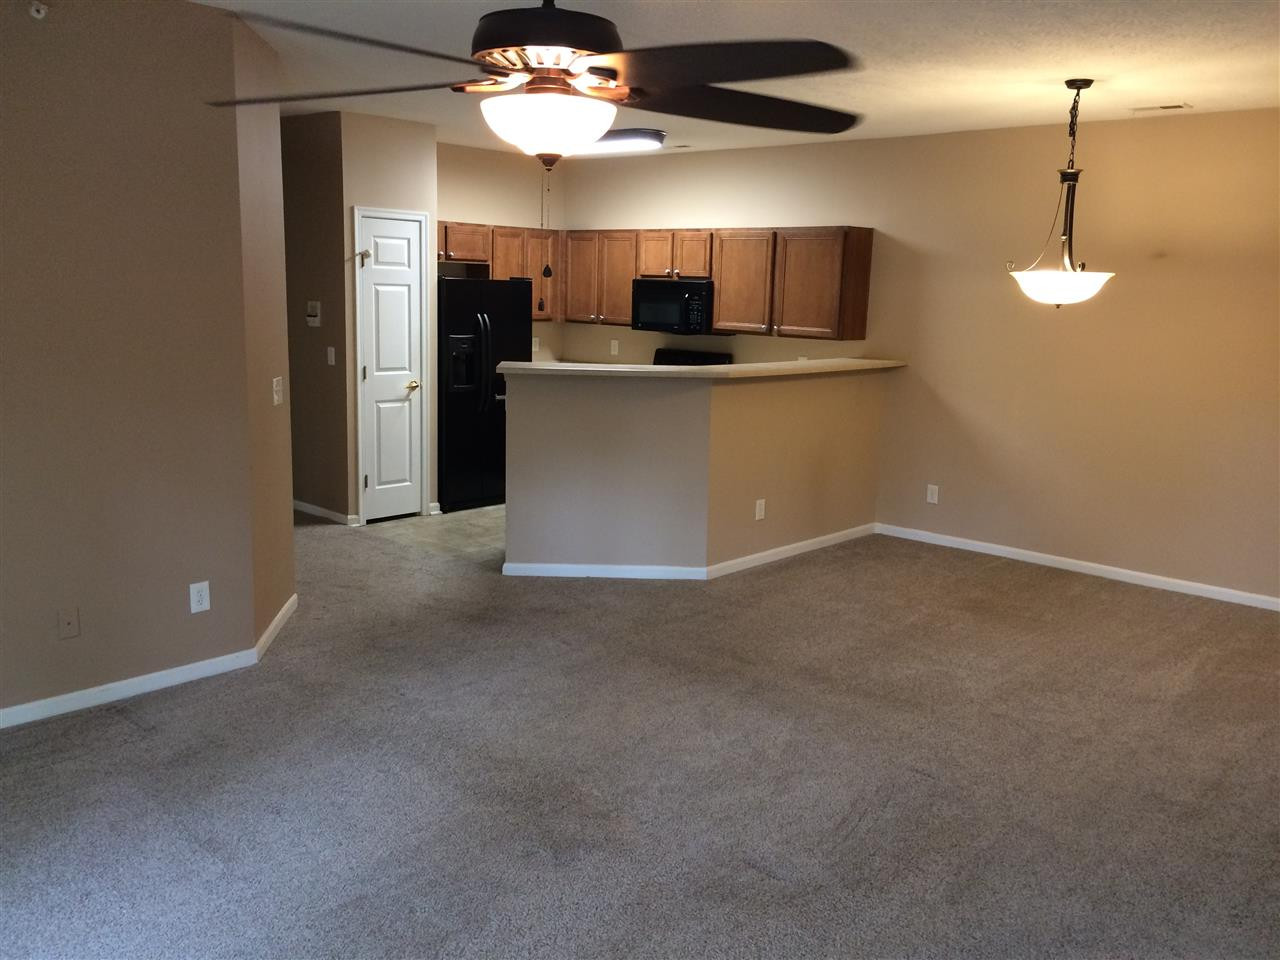 Photo 3 for 551 Ivy Ridge Dr, 10 Cold Spring, KY 41076